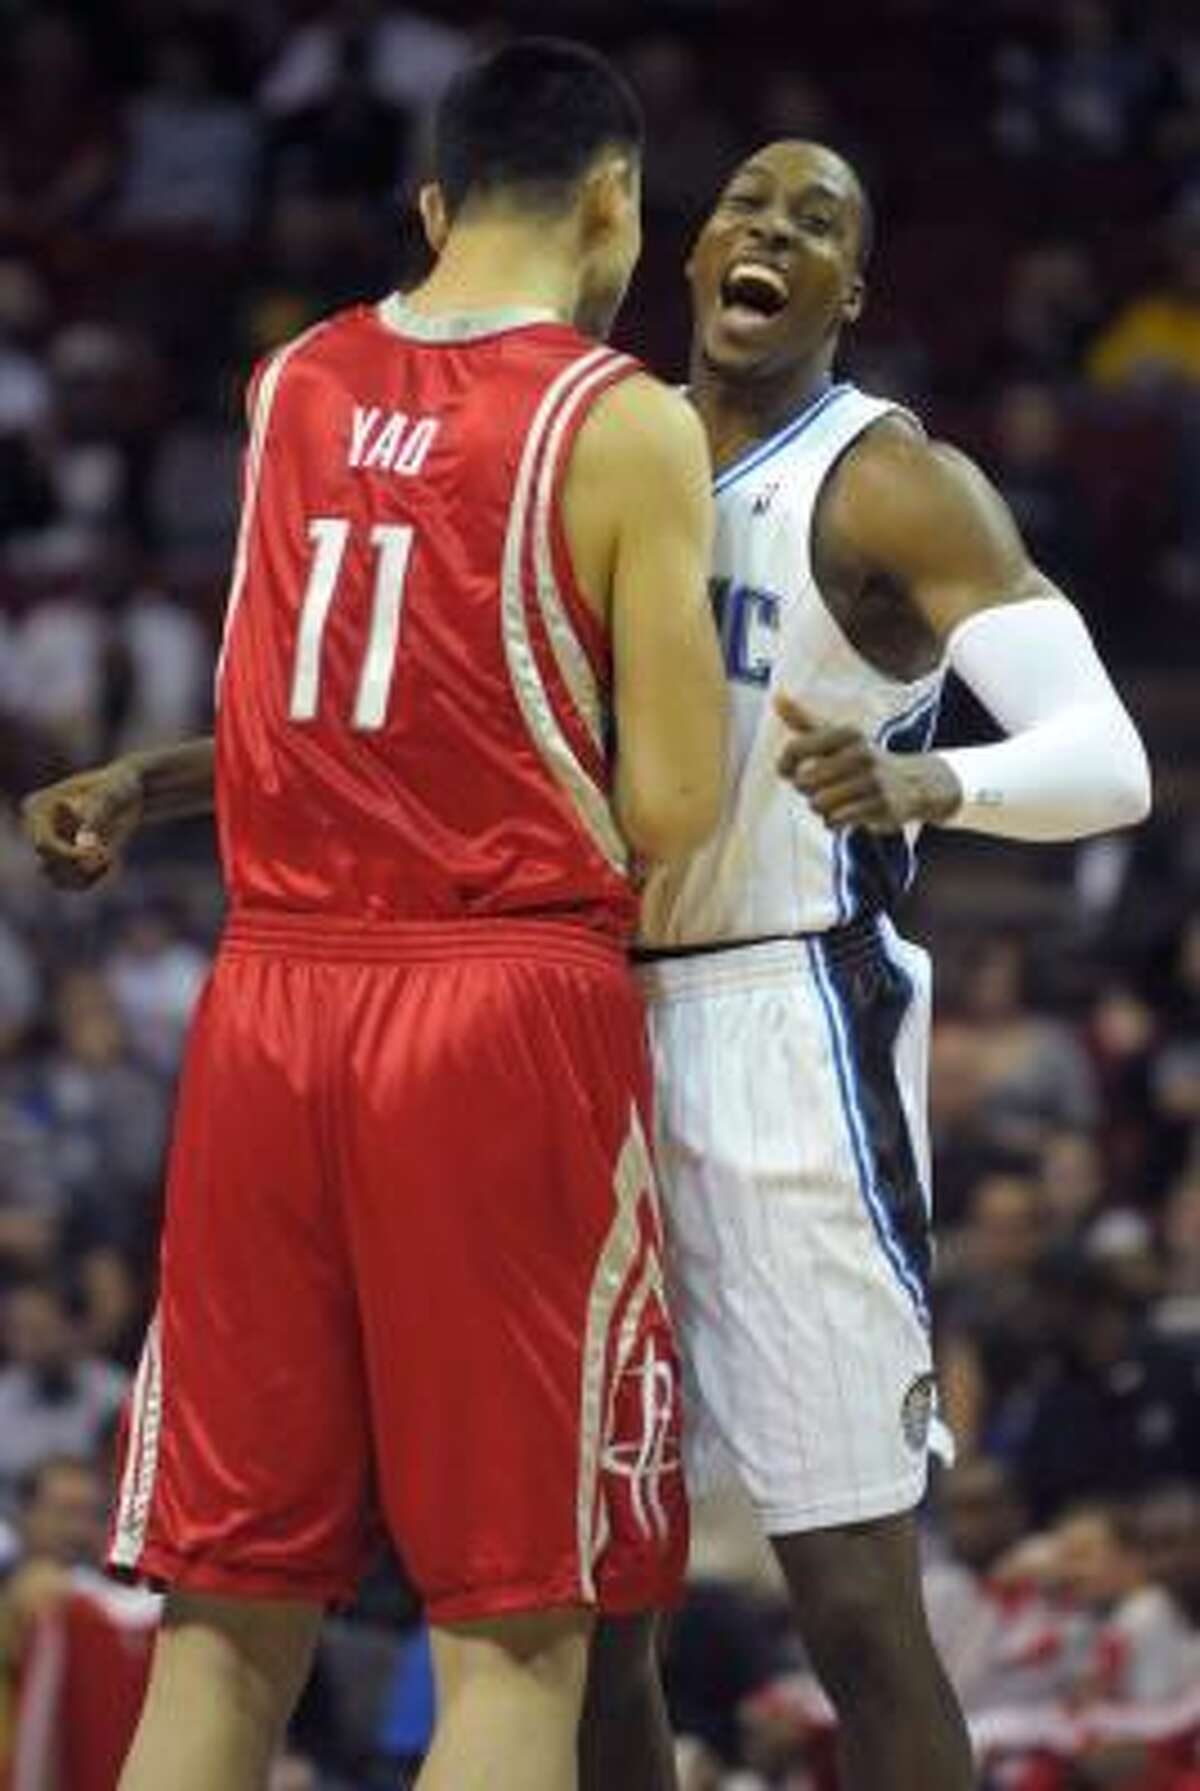 Dwight Howard (right) had a few battles with Yao Ming when the former played in Orlando.